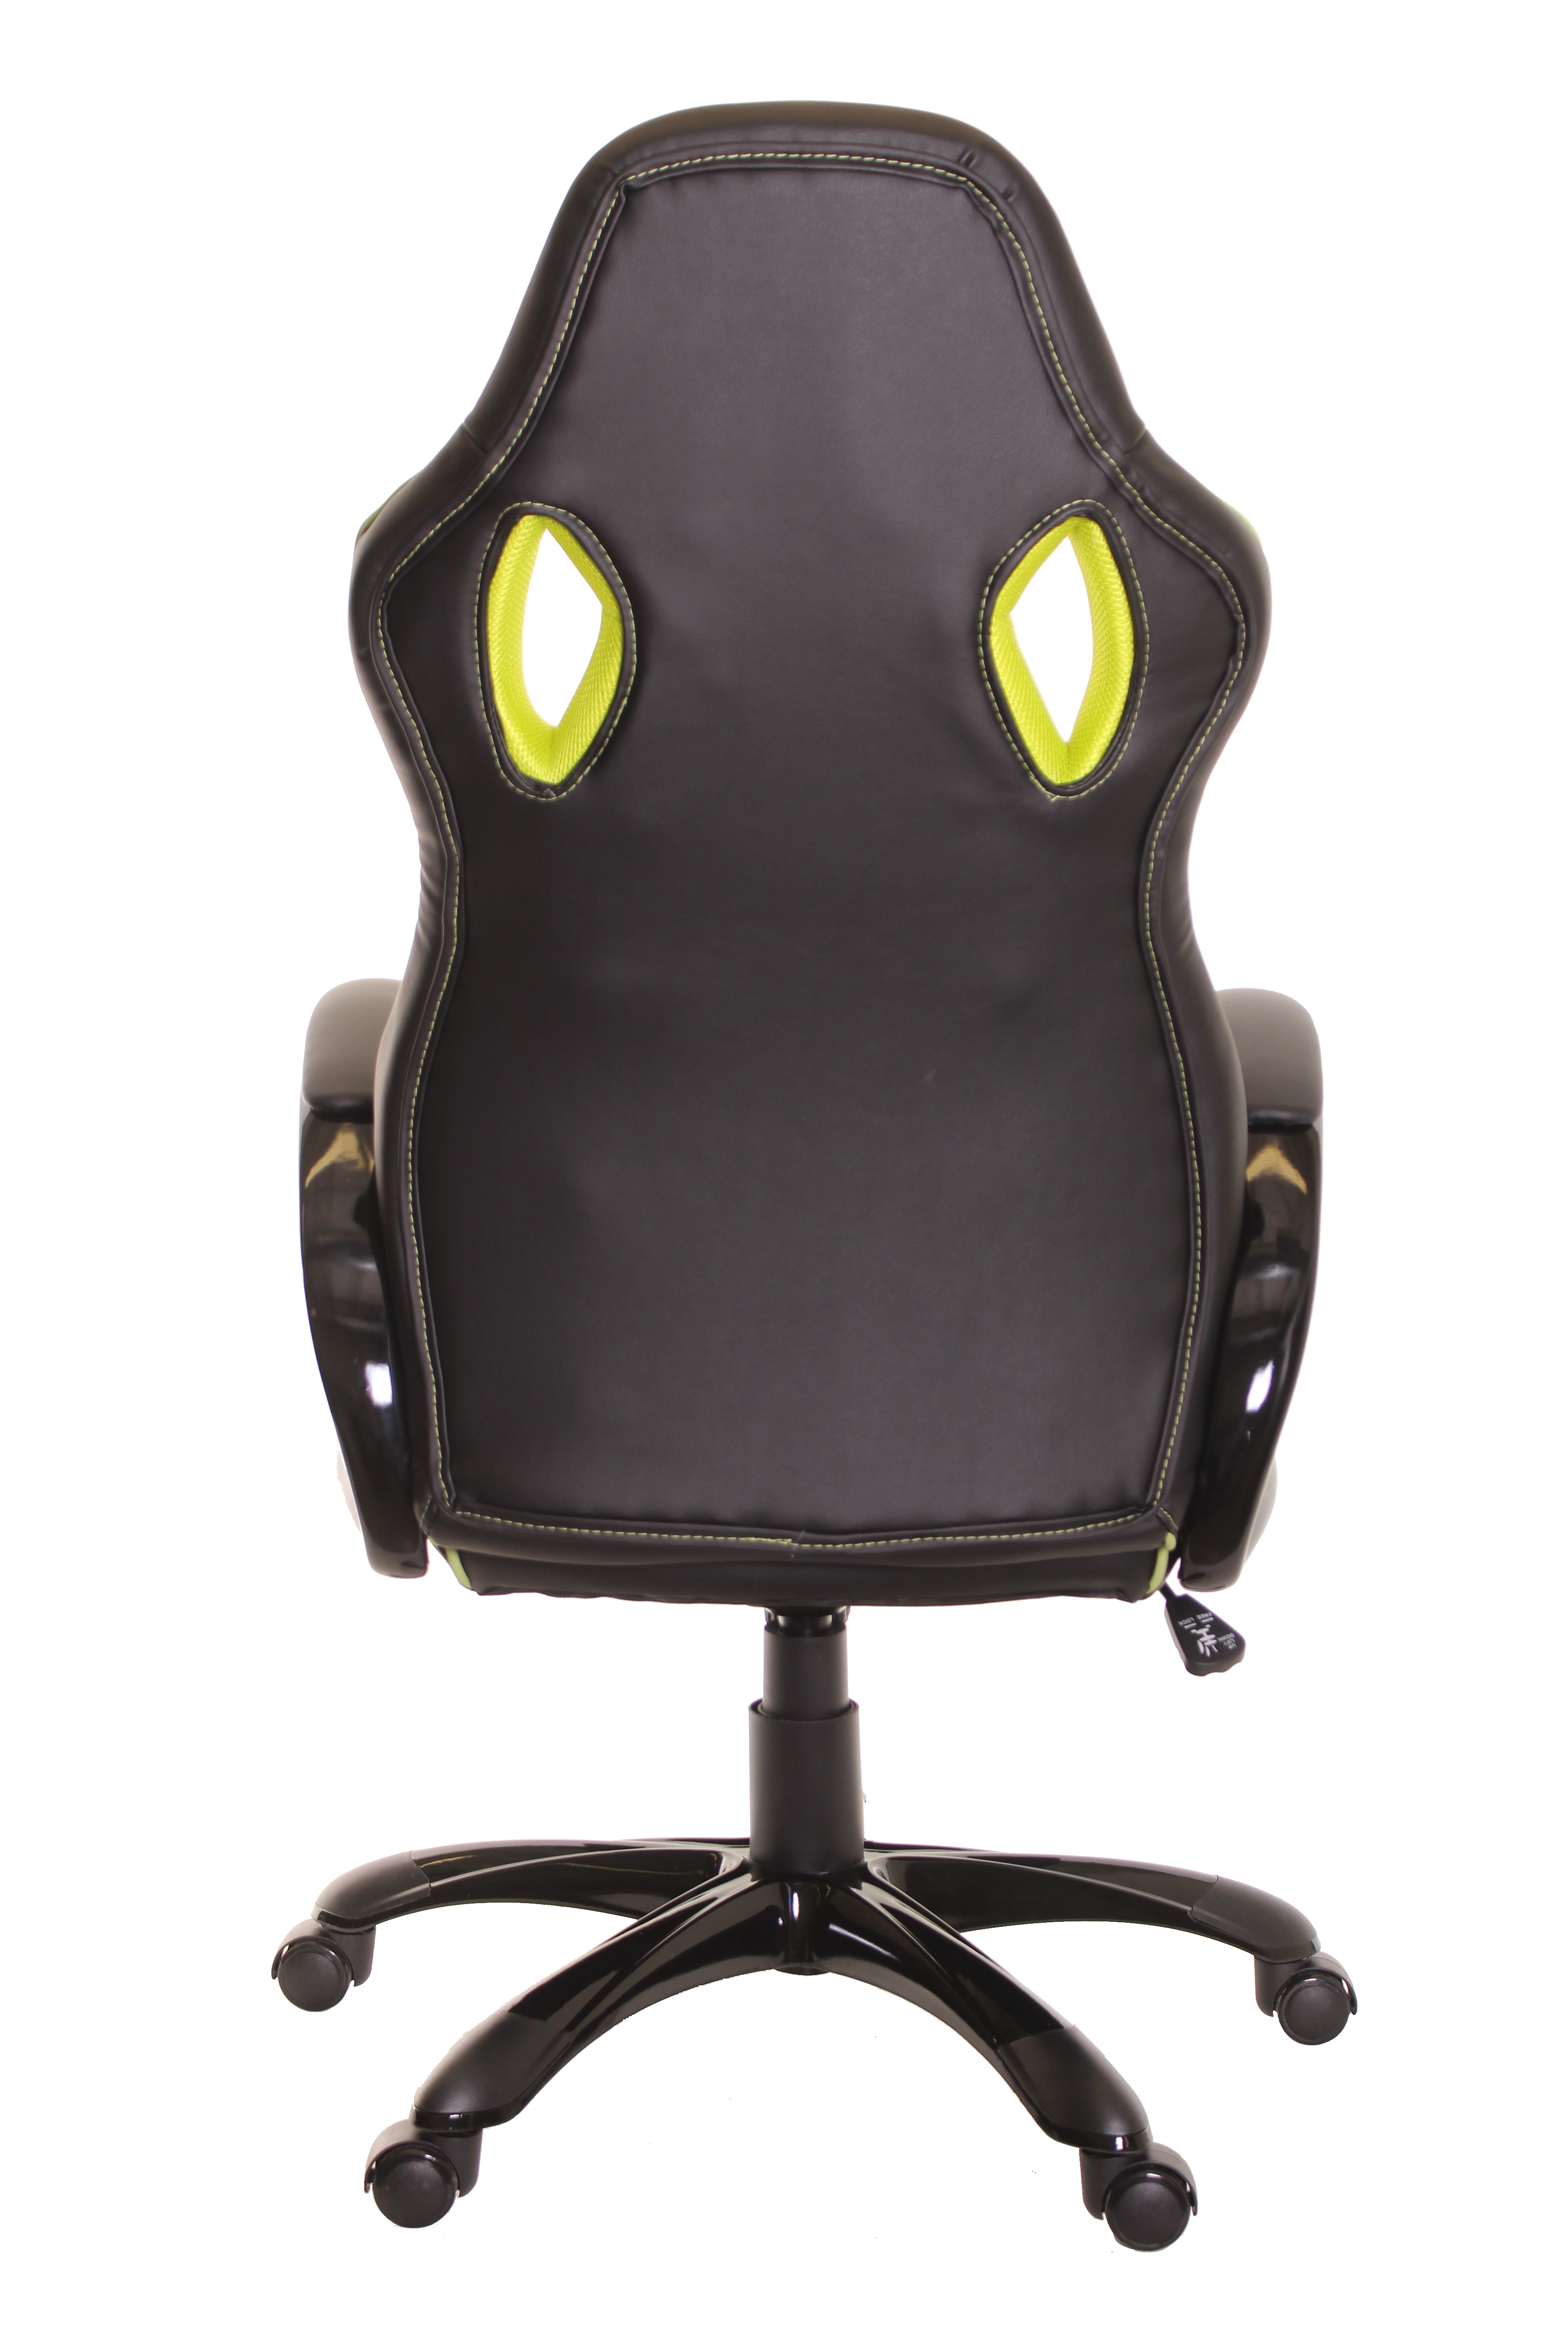 comfortable office chairs for gaming serta timeoffice race car style chair ergonomic leather black walmart com